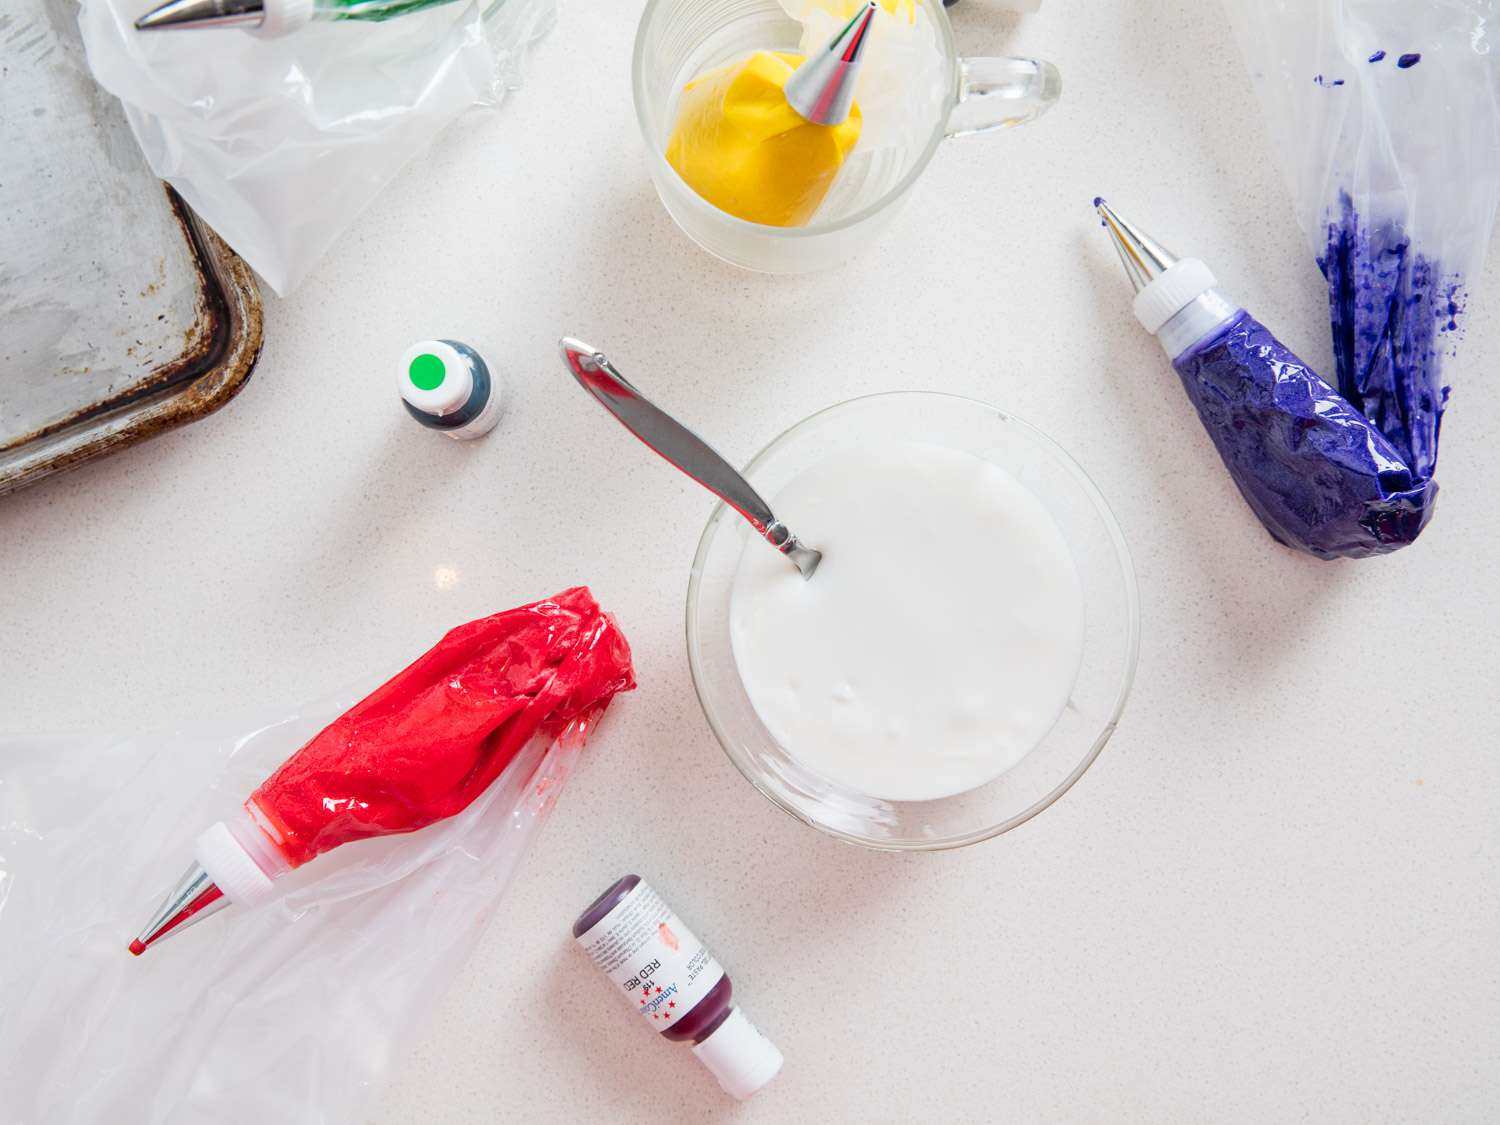 Tools for frosting cookies with colorful royal icing: bowl of plain white royal icing, bottles of gel paste food dye, and piping bags of colored icing in red, yellow, and blue